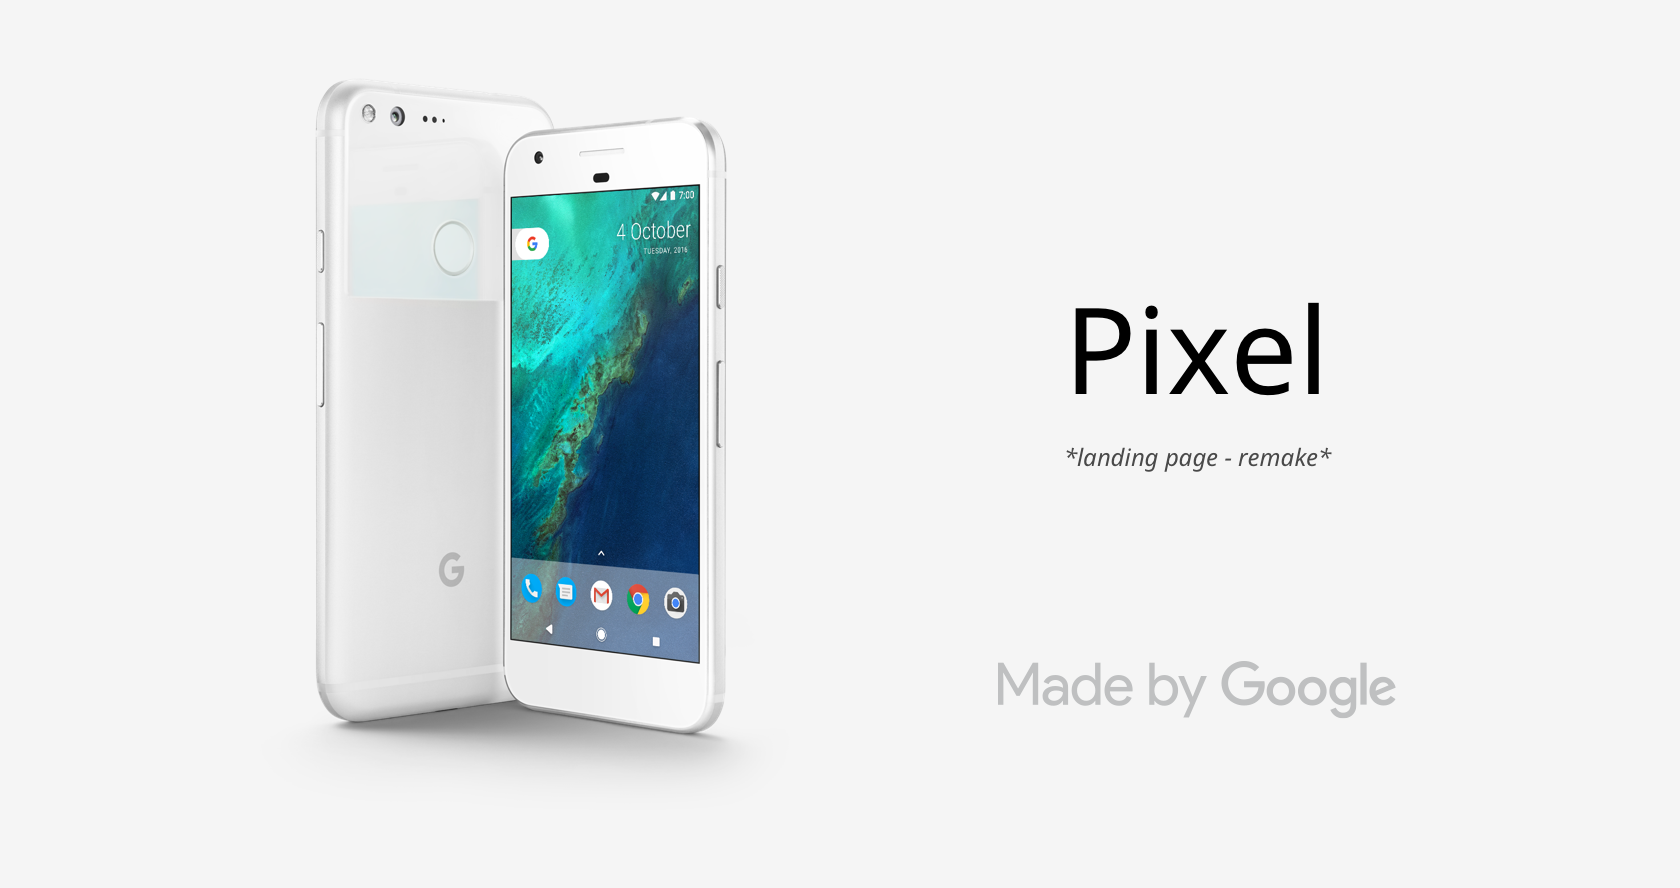 Check out my pixel-perfected remake of the Google Pixel website   here  .